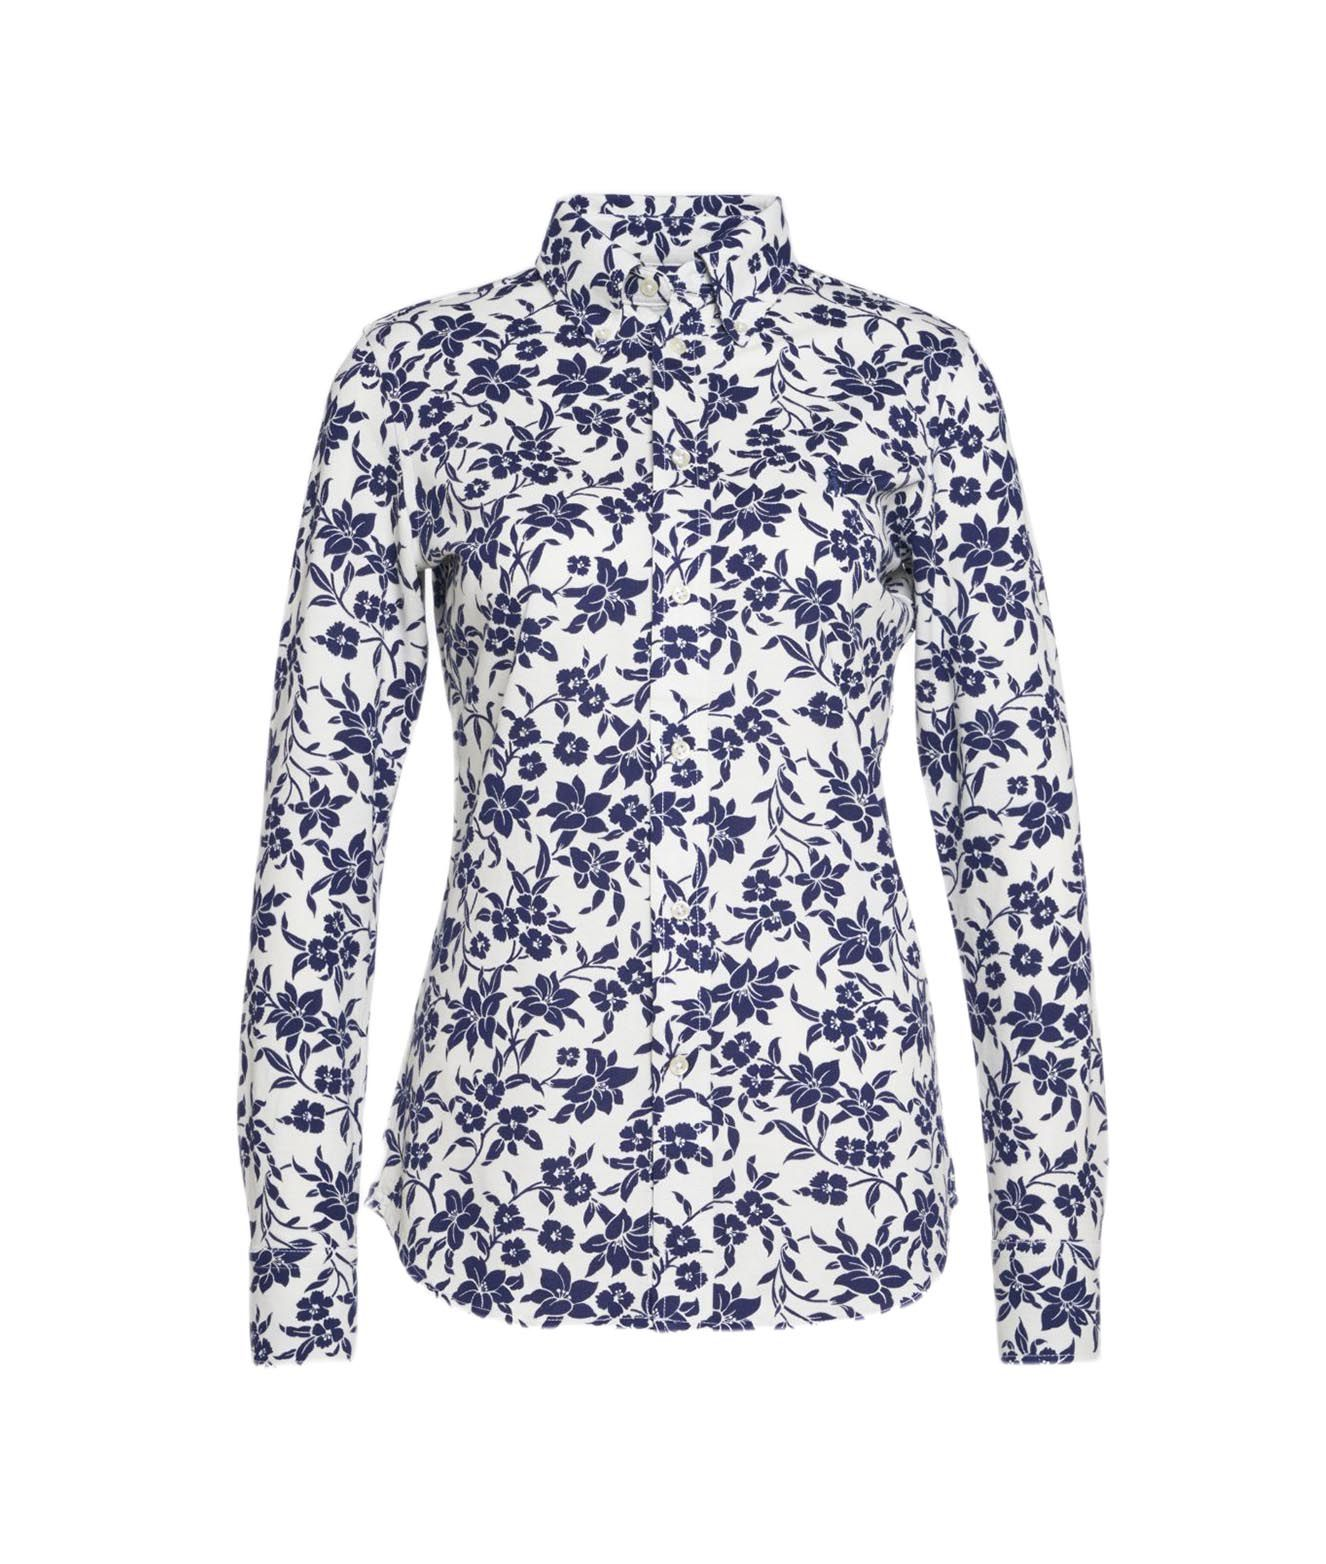 Ralph Lauren SHIRT WITH FLORAL PRINT